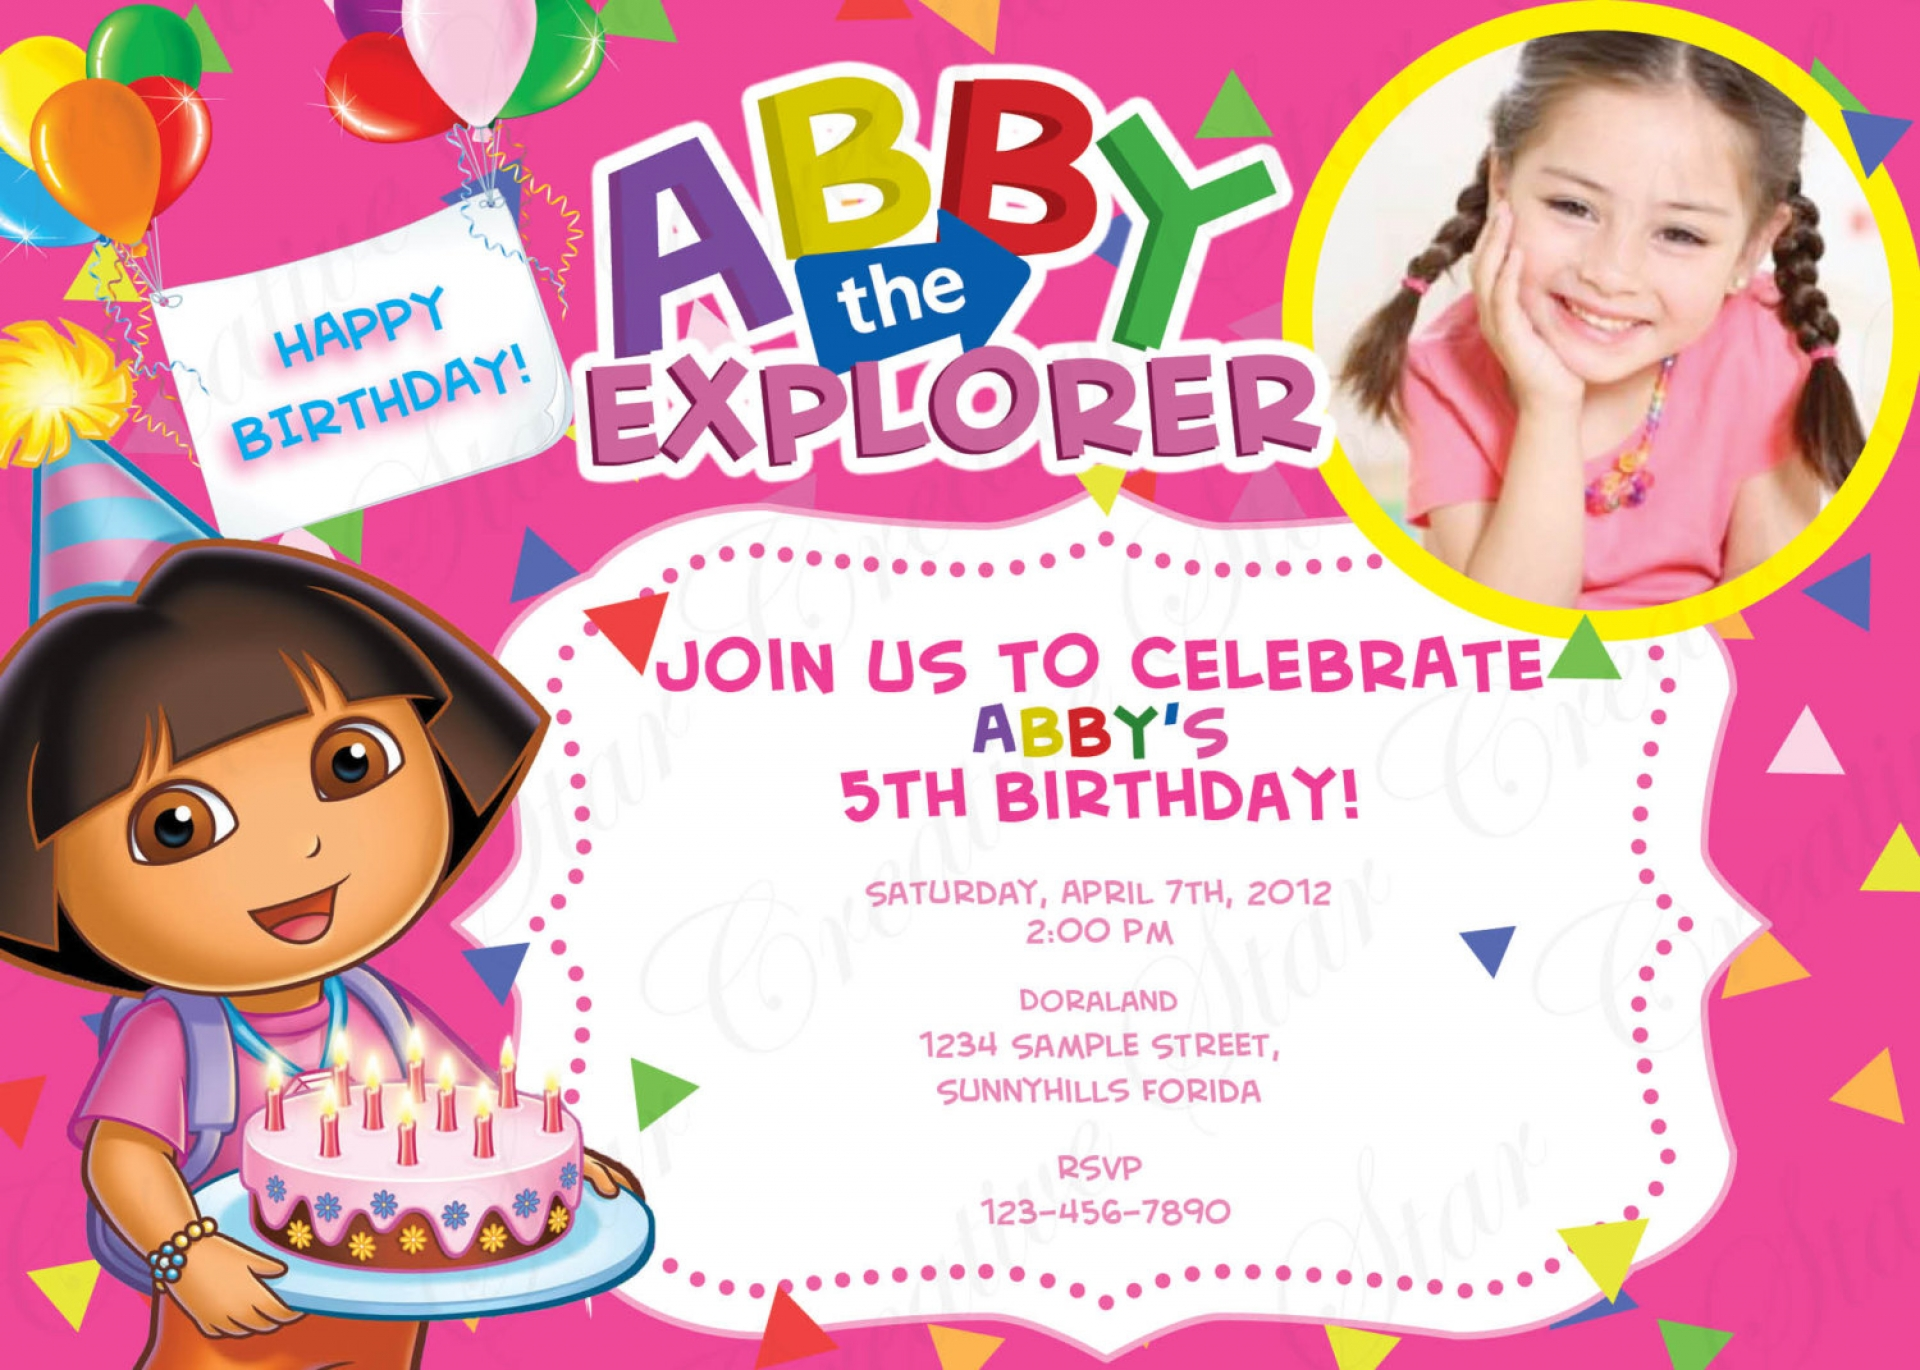 design birthday invitations online for free ; Customized-Birthday-Invitation-Cards-Online-Free